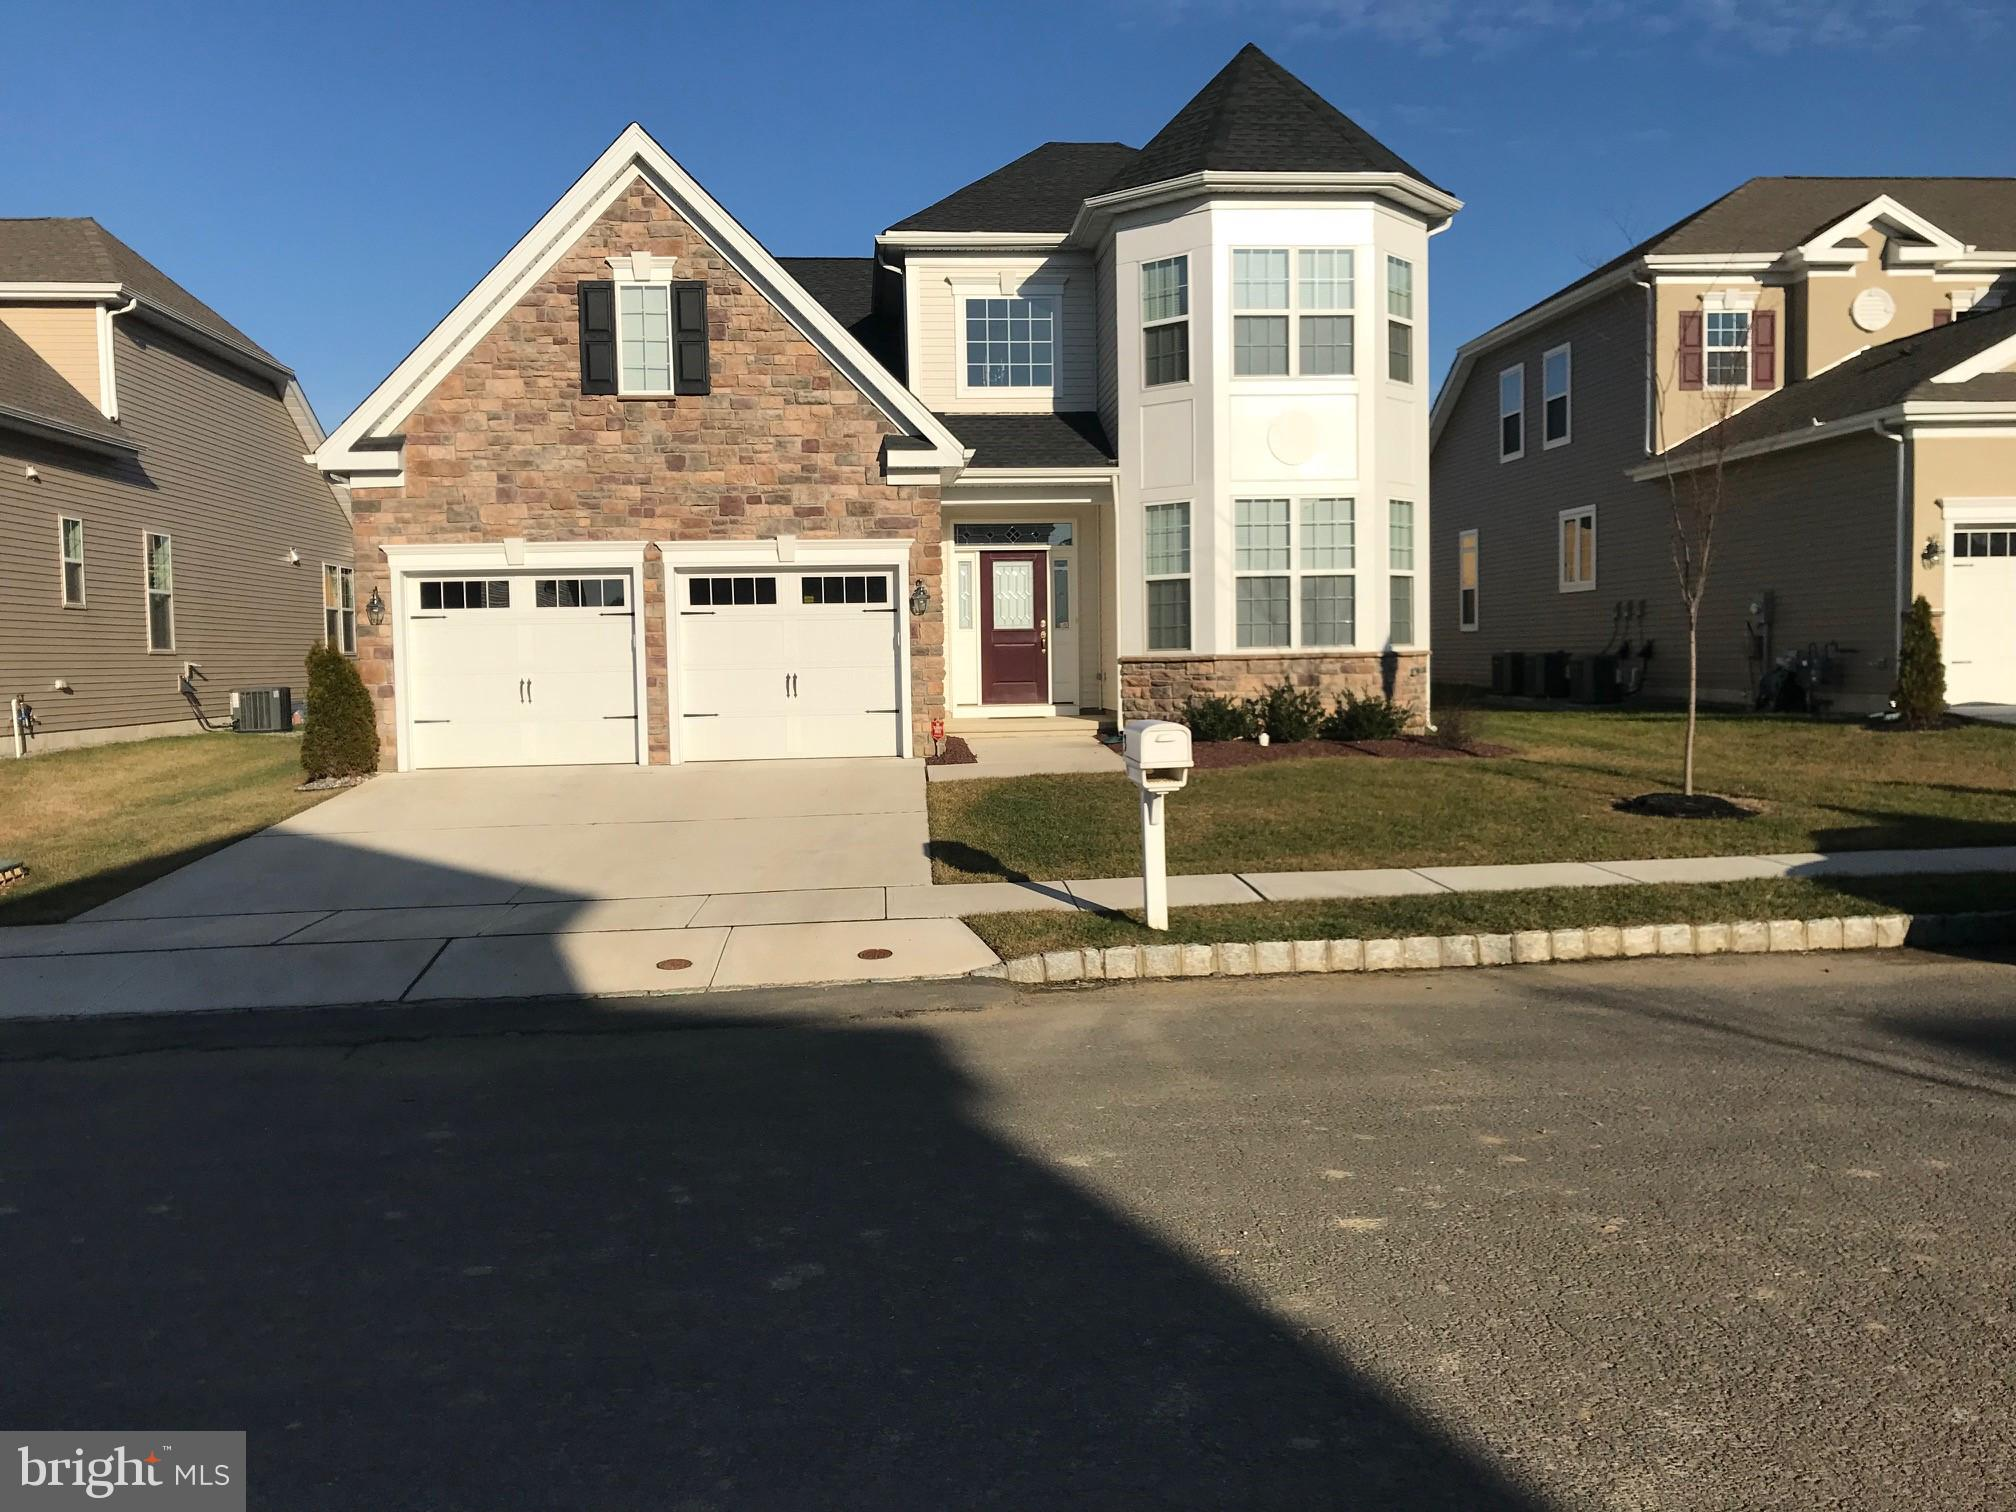 59 BERNINI WAY 79, MONMOUTH JUNCTION, NJ 08852